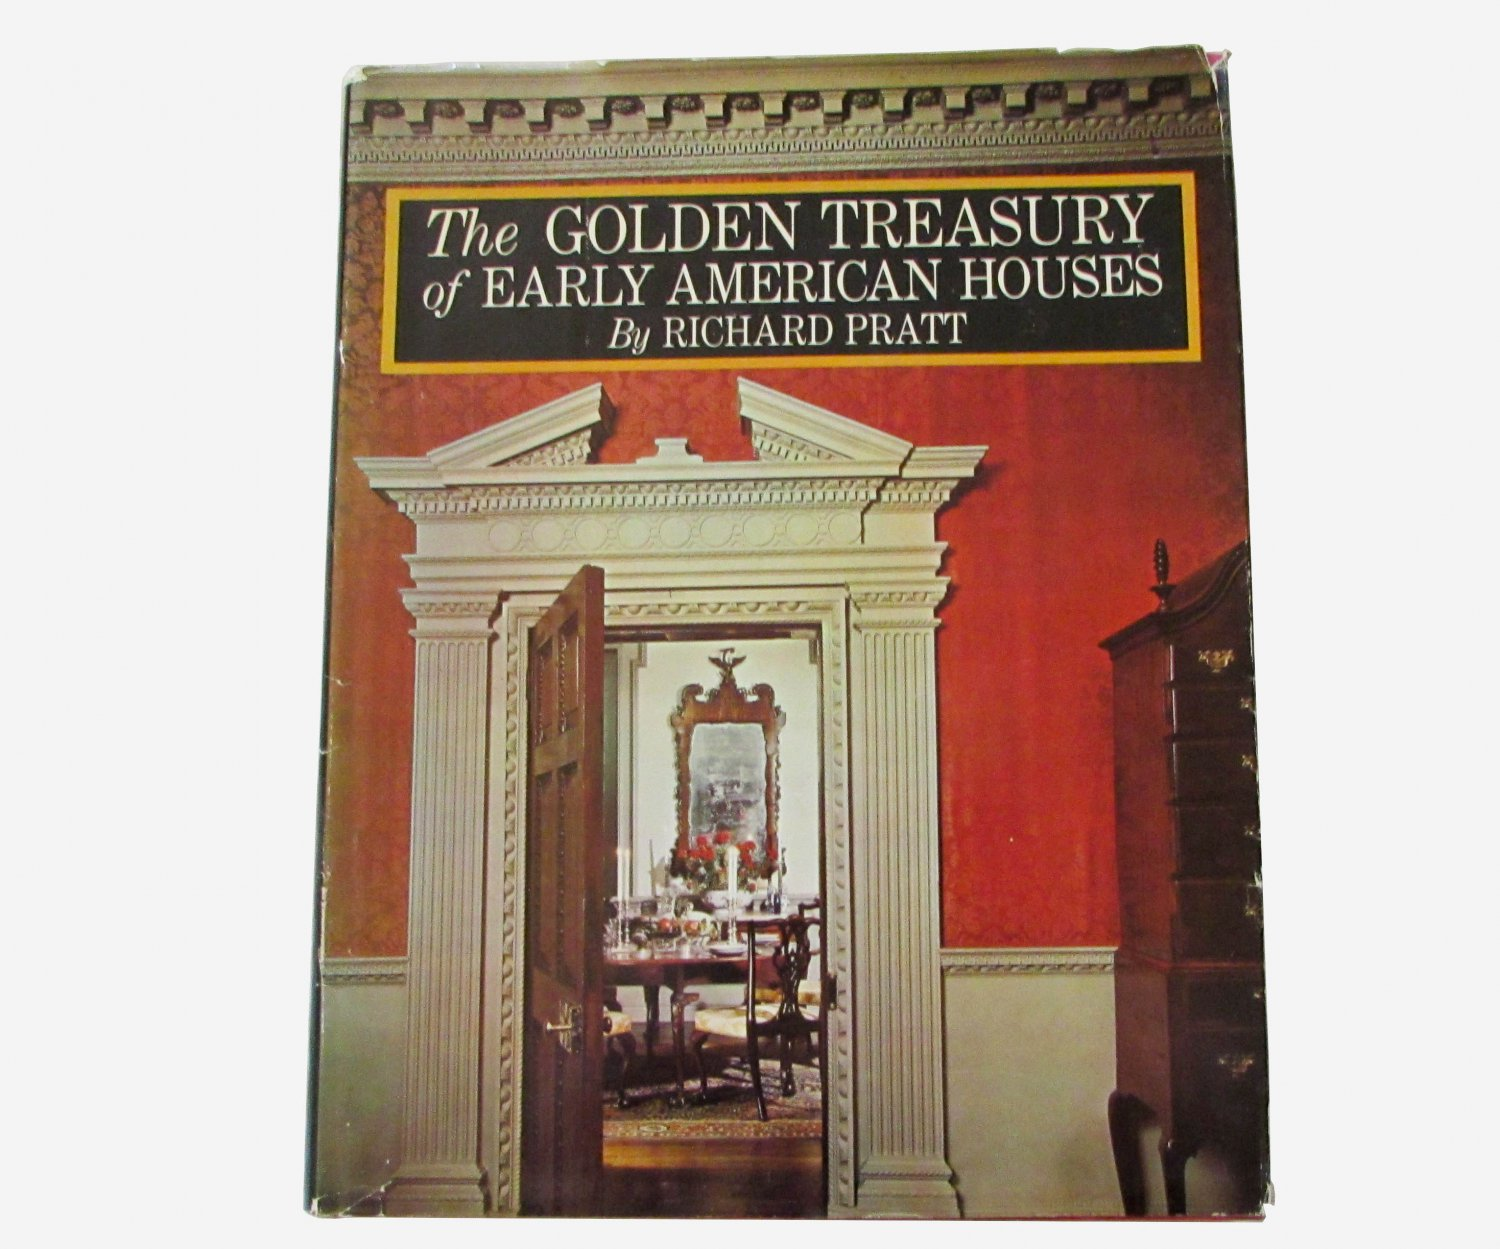 The Golden Treasury of Early American Houses by Richard Pratt